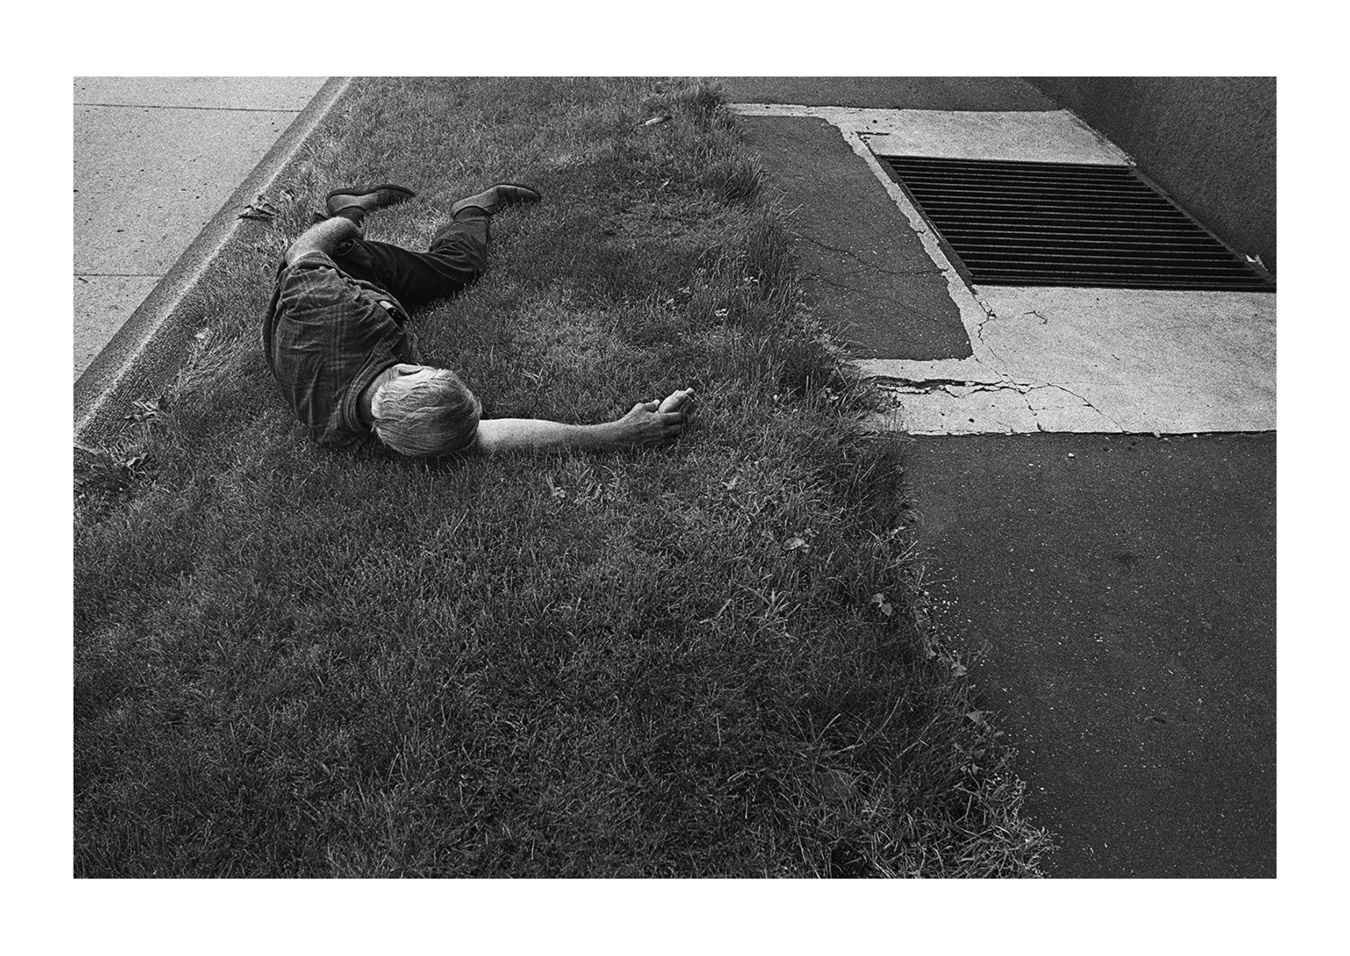 A Man Sleeping on the Grass, Detroit 1972